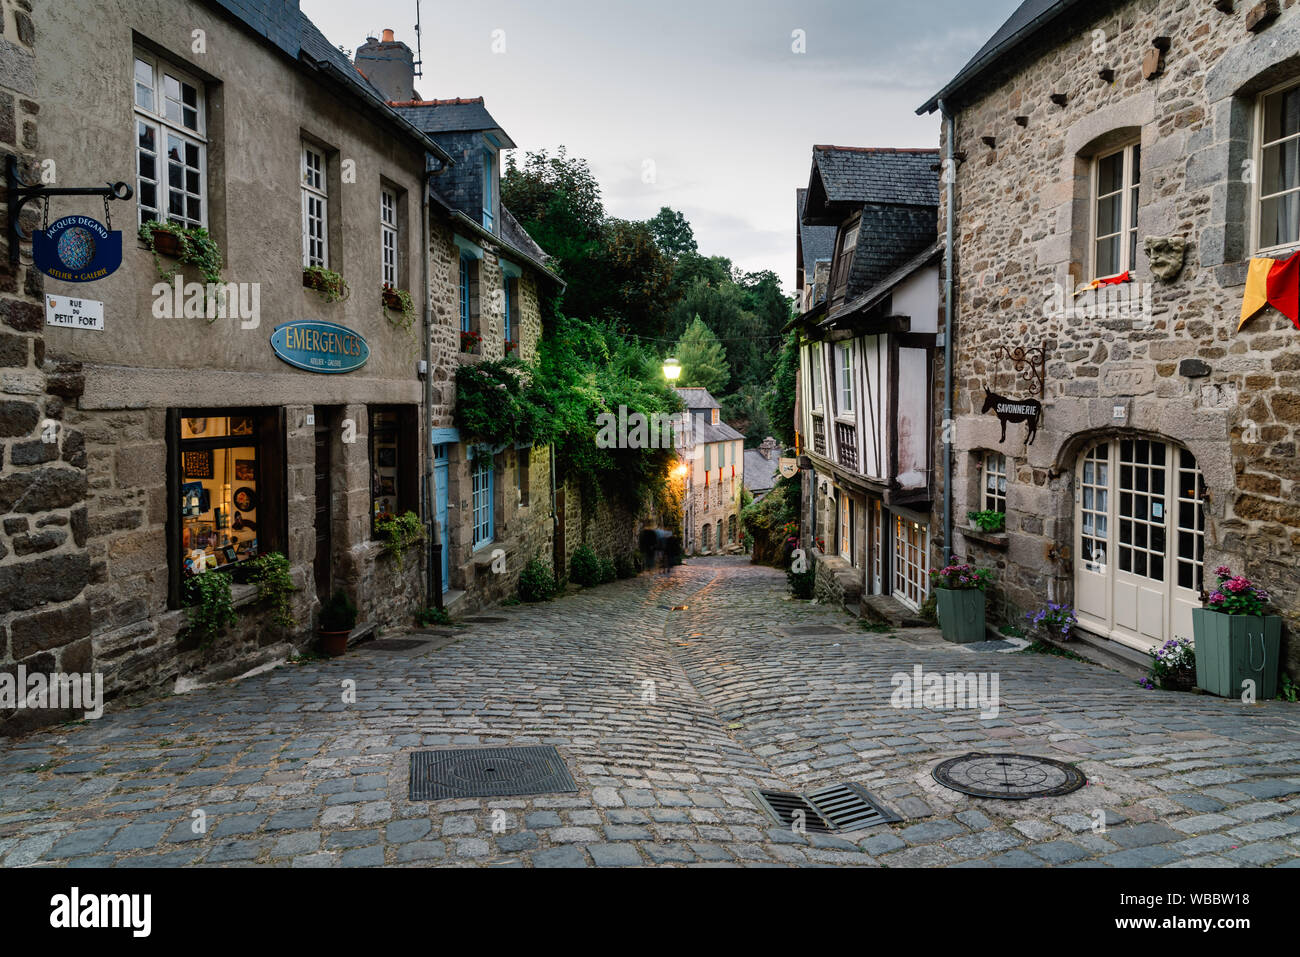 Dinan, France - July 23, 2018: Old cobblestoned street with medieval houses  at dusk, French Brittany Stock Photo